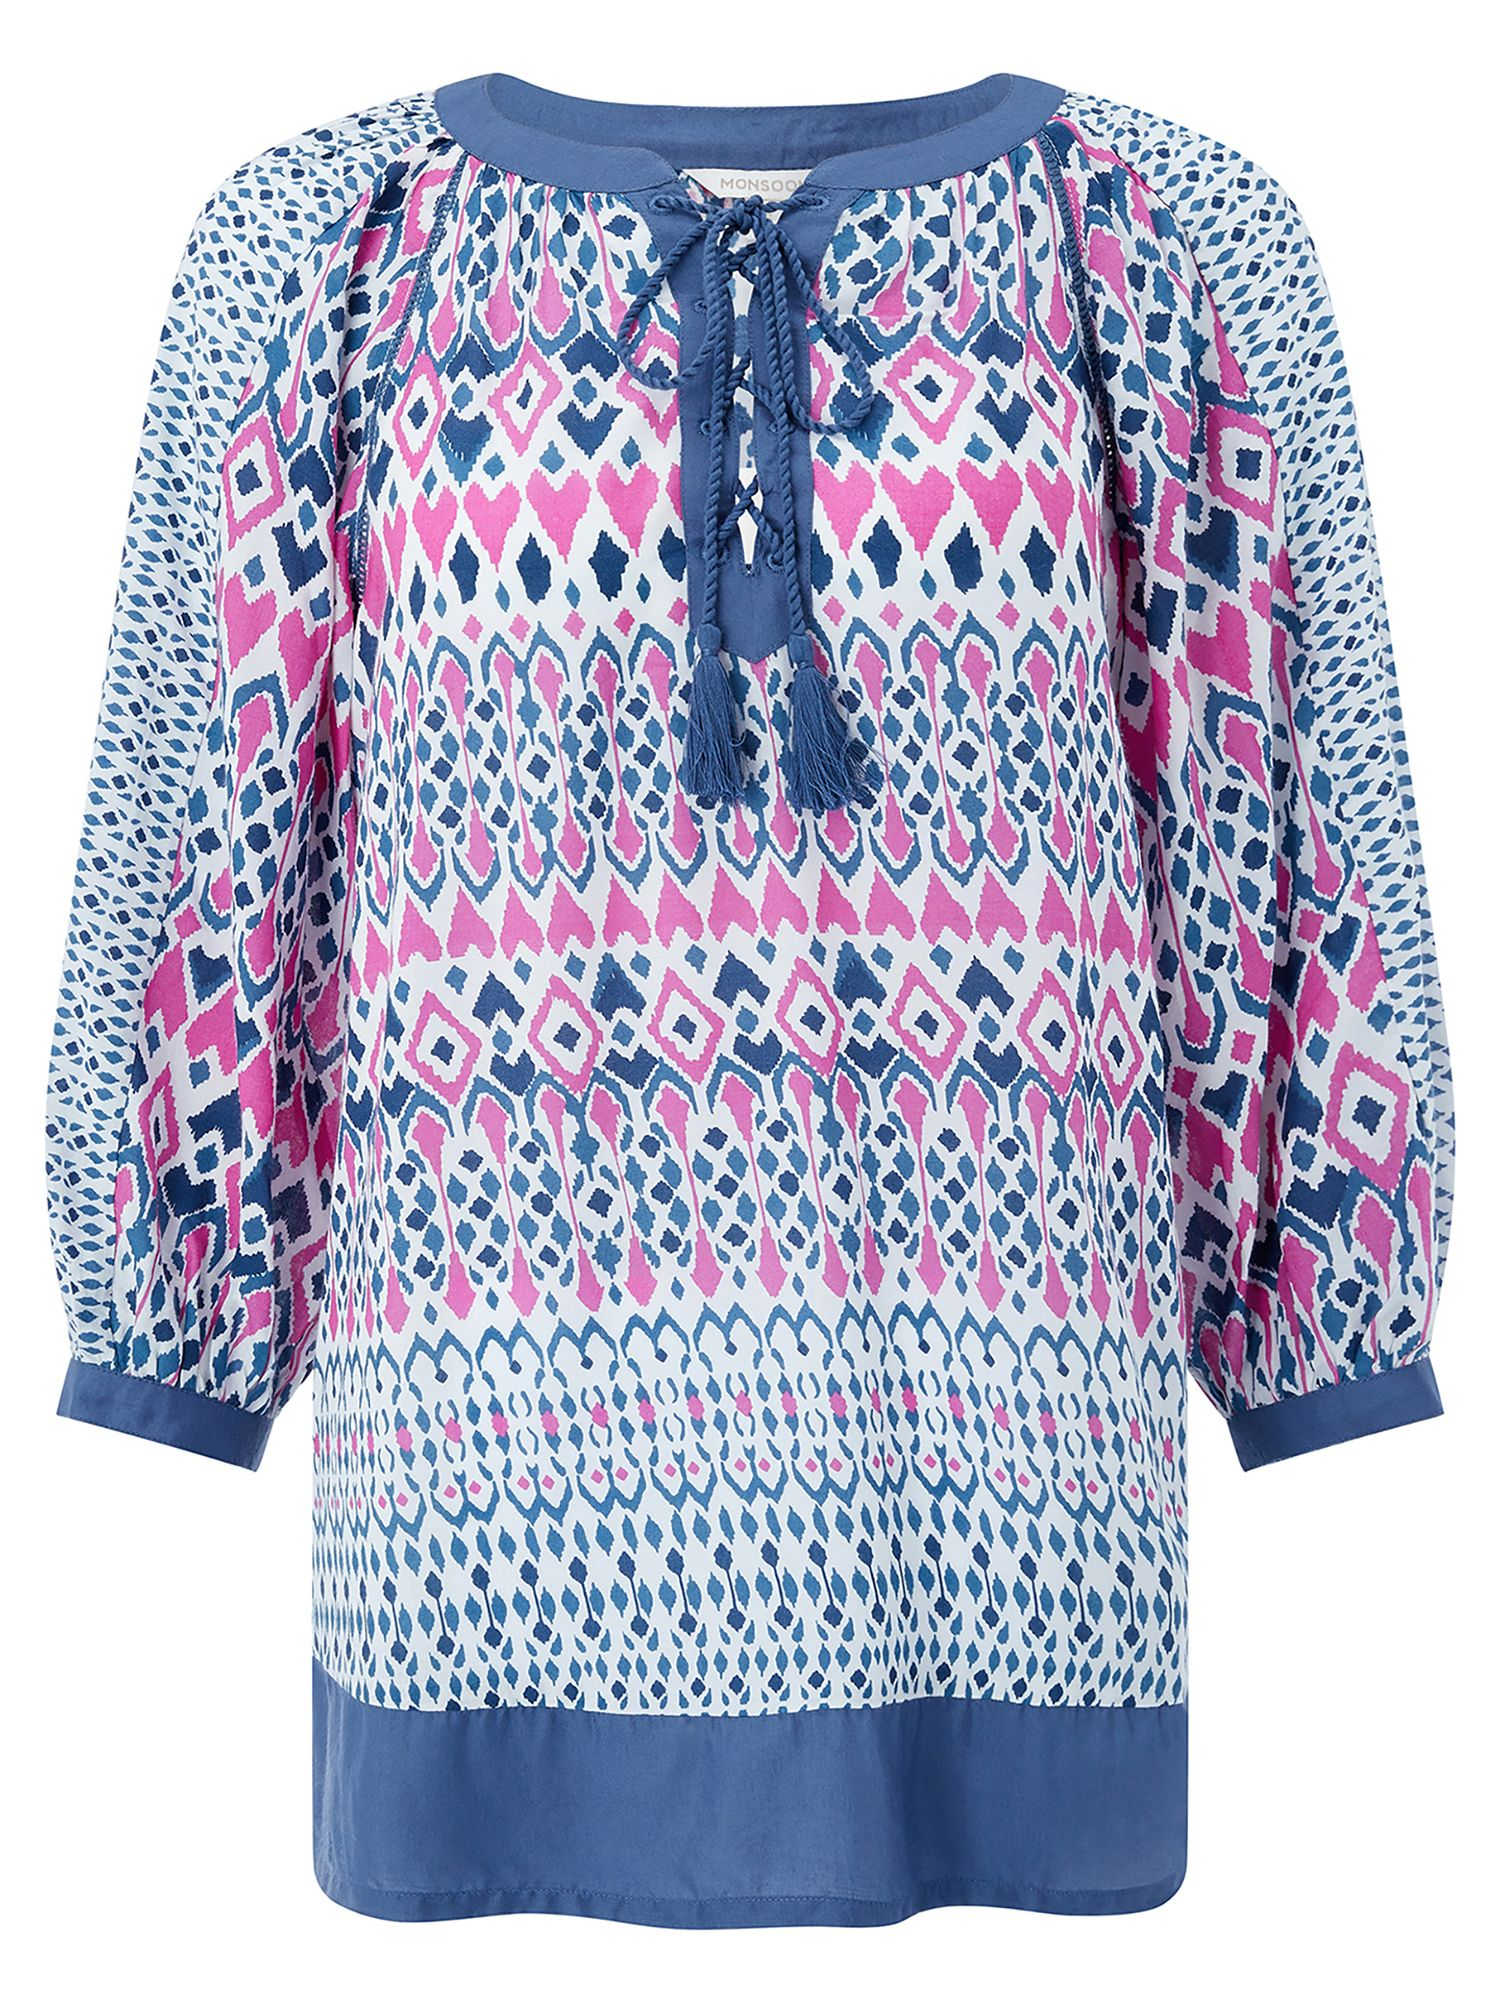 Monsoon IMMY IKAT PRINTED KAFTAN, Multi-Coloured